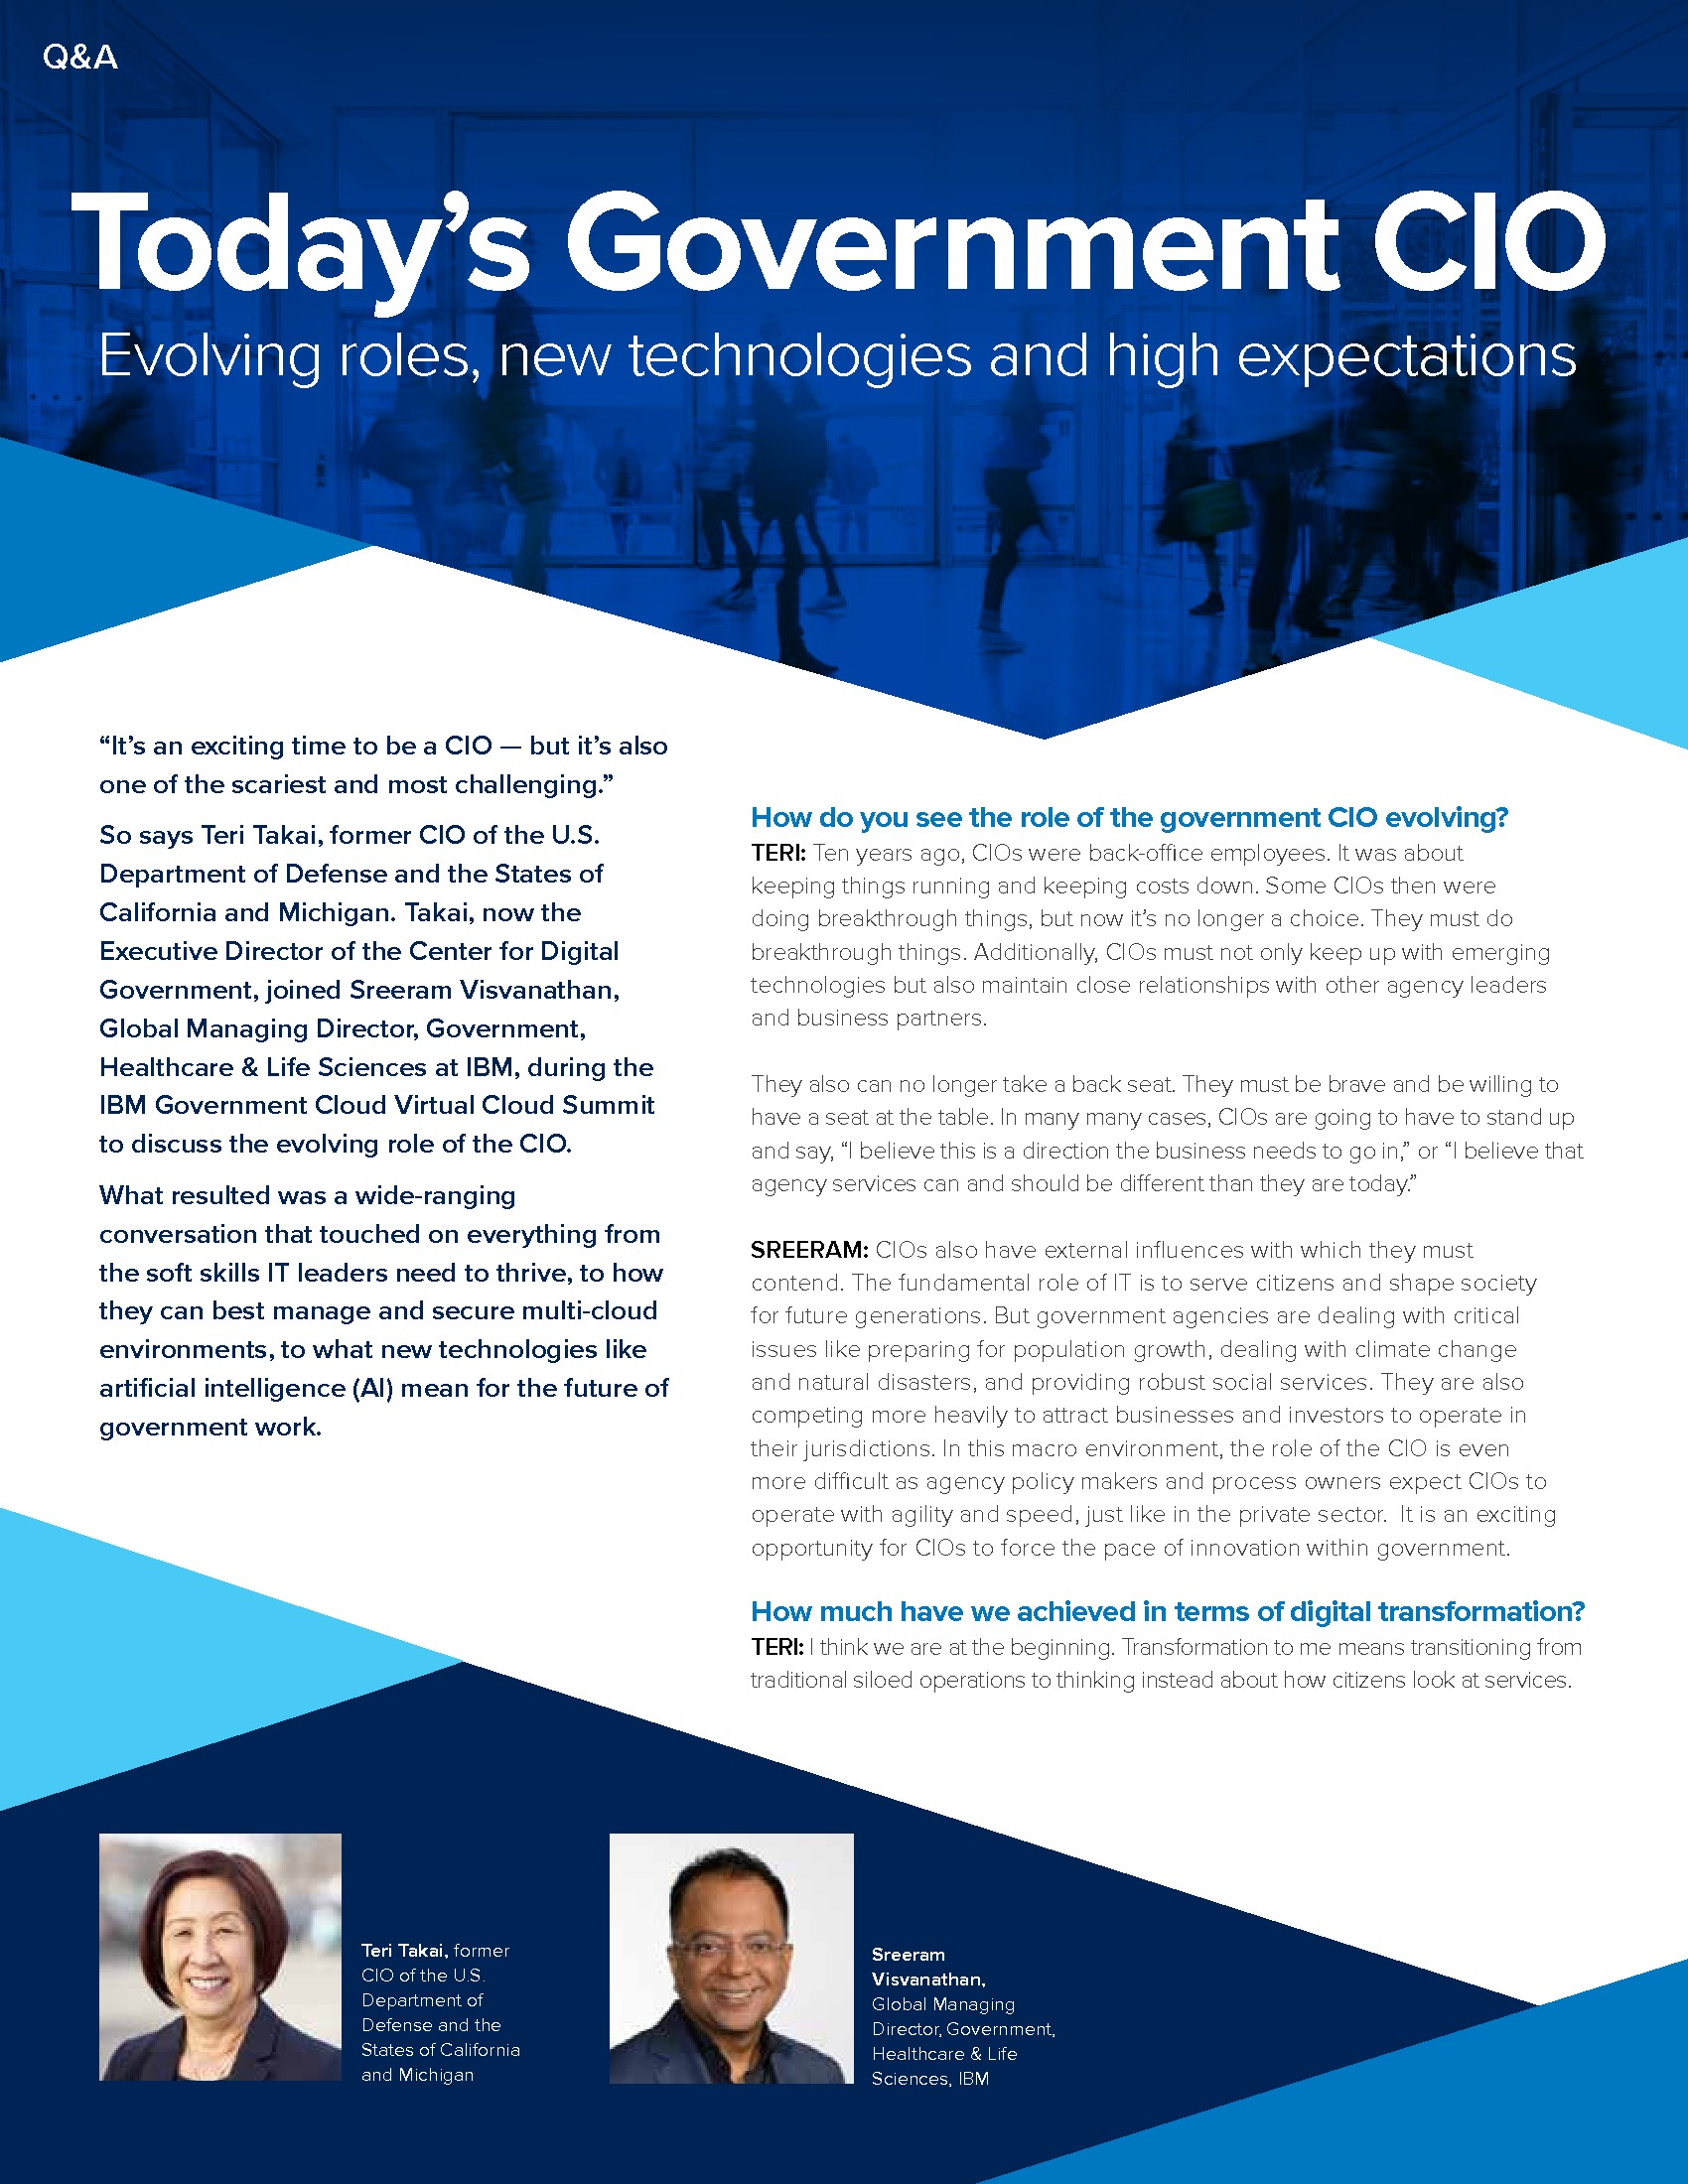 Paper: The Evolving Role of Today's Government CIO